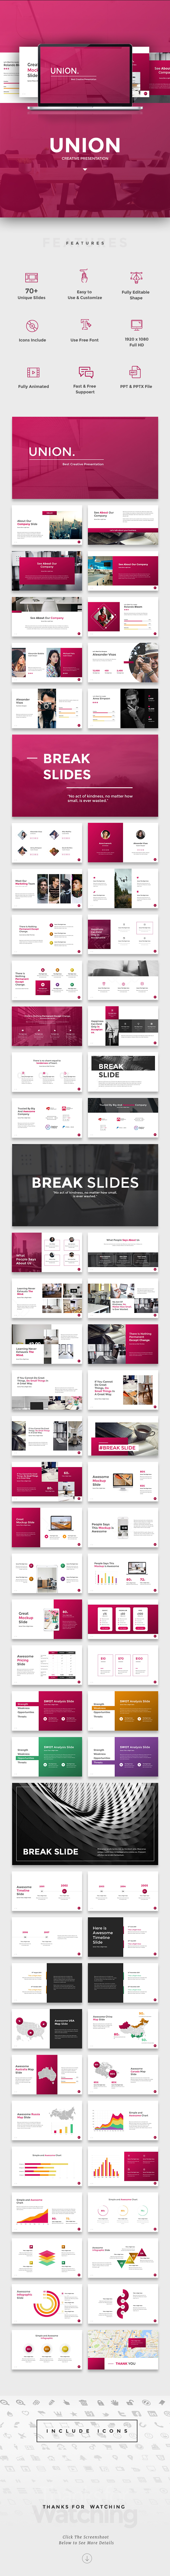 GraphicRiver Union Creative Google Slides 21176112